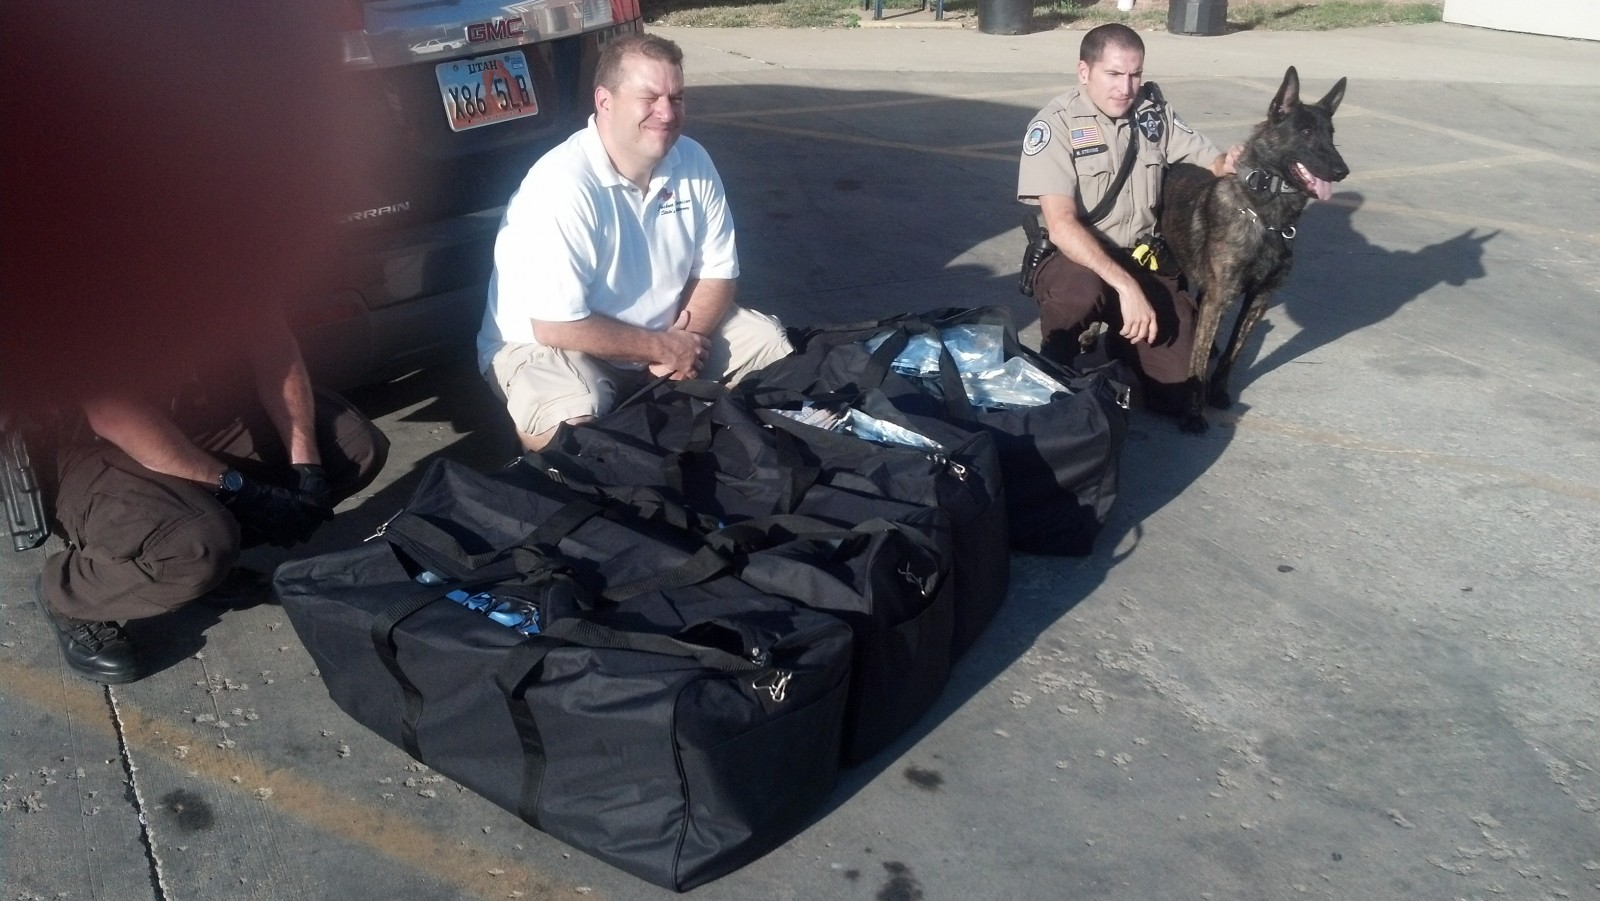 Fayette County Sheriff Dept makes cannabis arrest---estimated at better than 60 LBS of cannabis